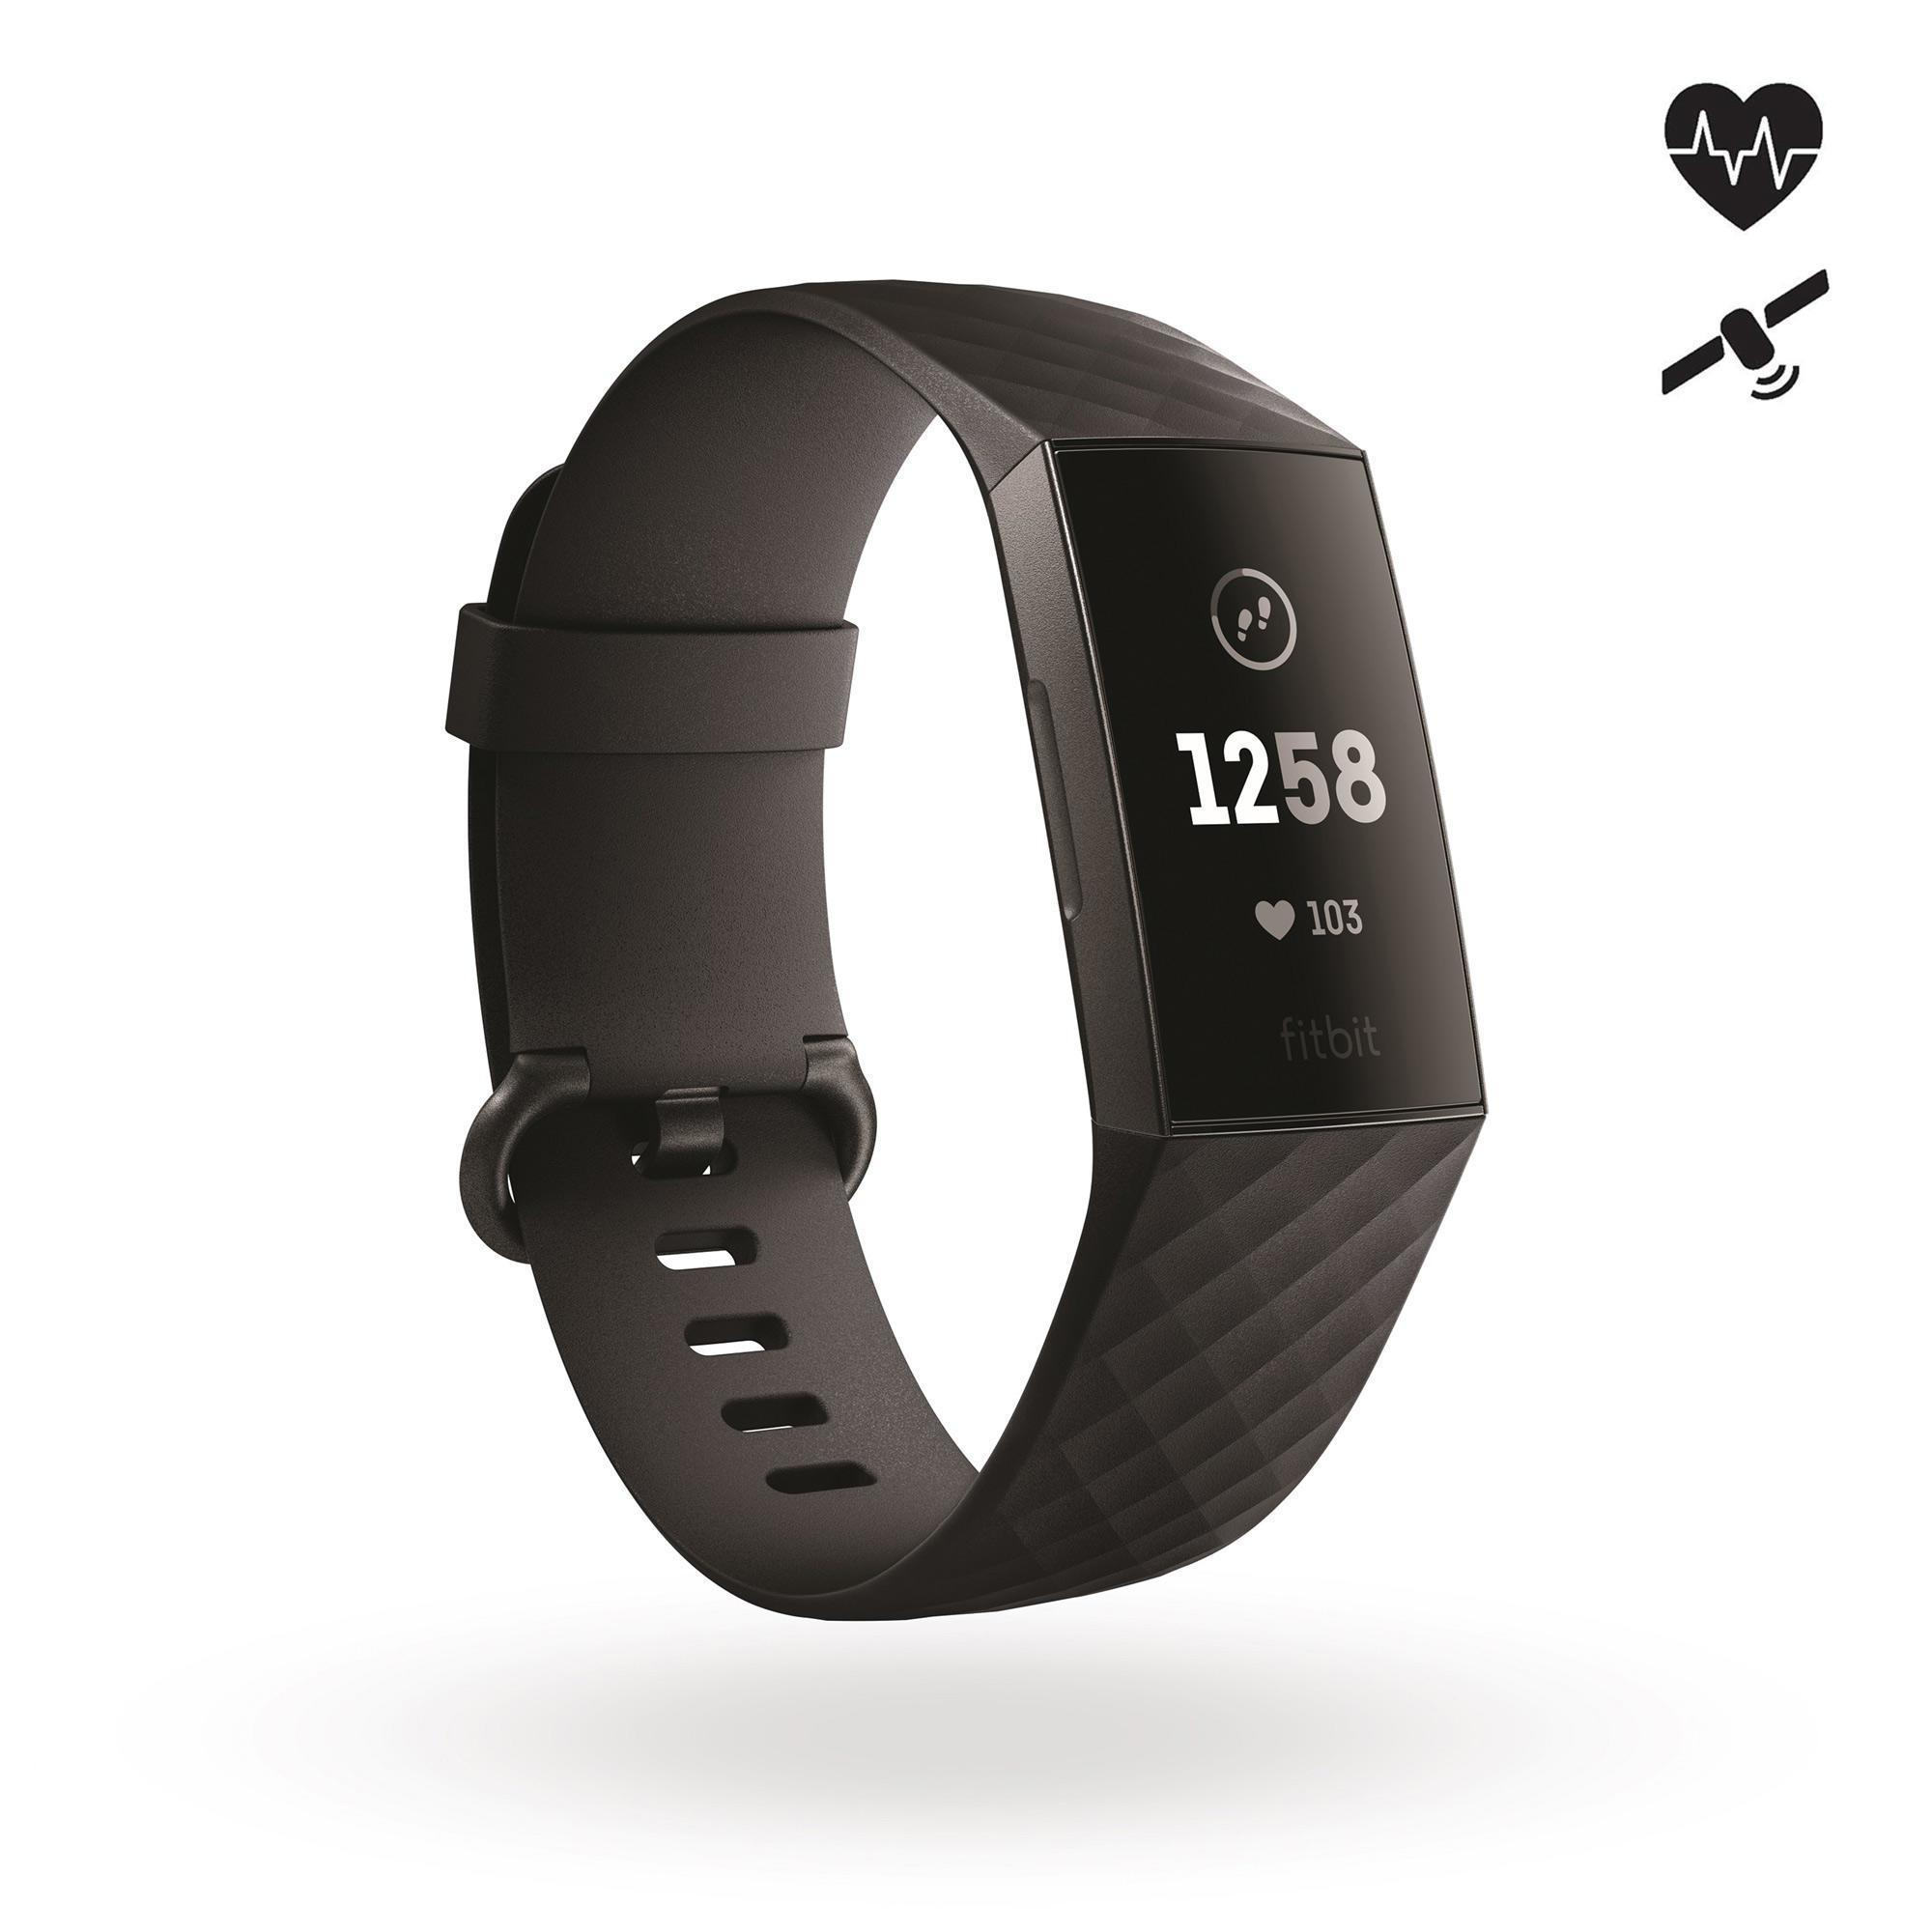 Fitnessarmband Fitbit Charge 3 schwarz | Schmuck > Armbänder > Fitness-Armbänder | Schwarz | Wo - Polyester - Ab | Fitbit